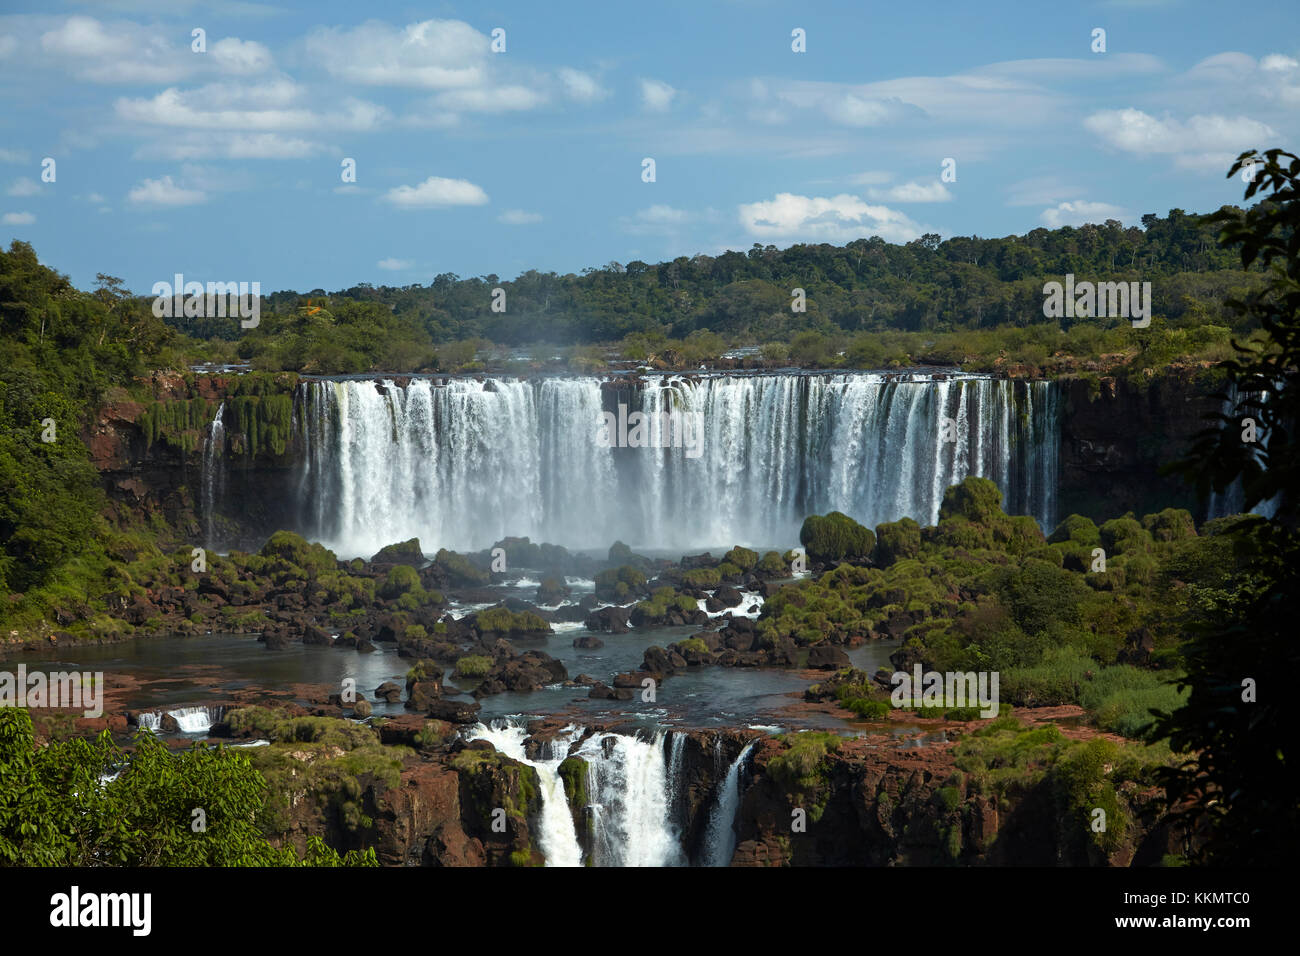 Salto Rivadavia and Salto Tres Musqueteros, Iguazu Falls, Argentina, seen from Brazil side, South America - Stock Image